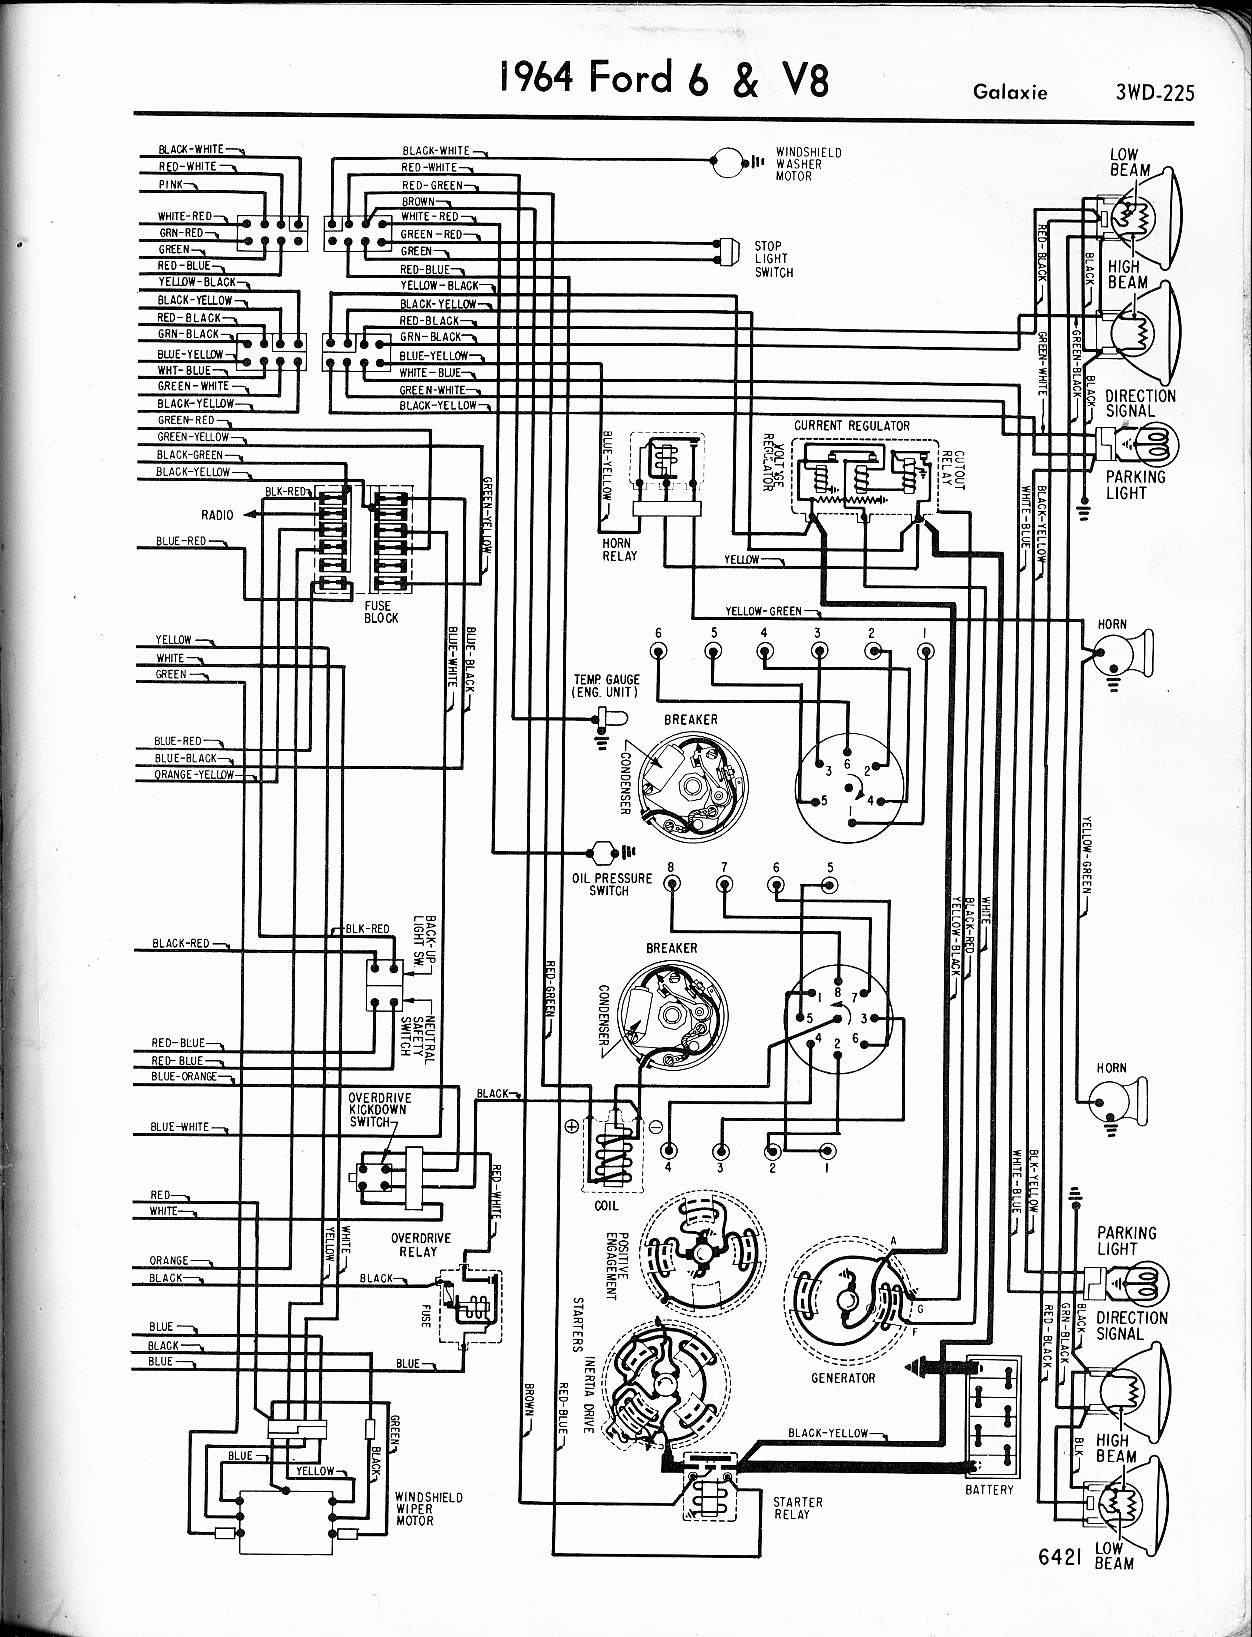 1963 ford econoline wiring diagram